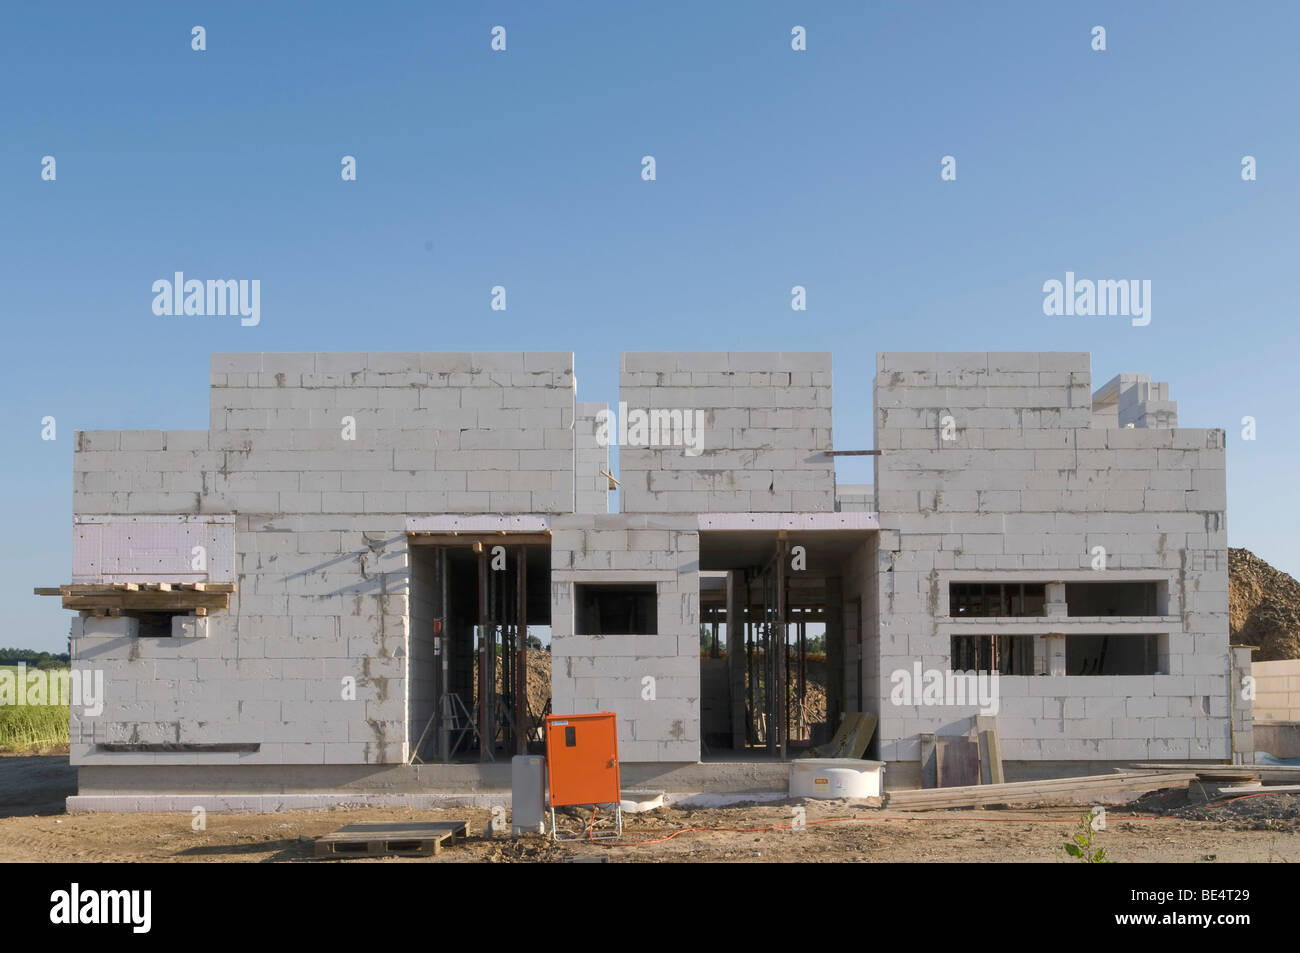 Shell construction, construction site, residential building with support pillars for the first-floor floor slab - Stock Image